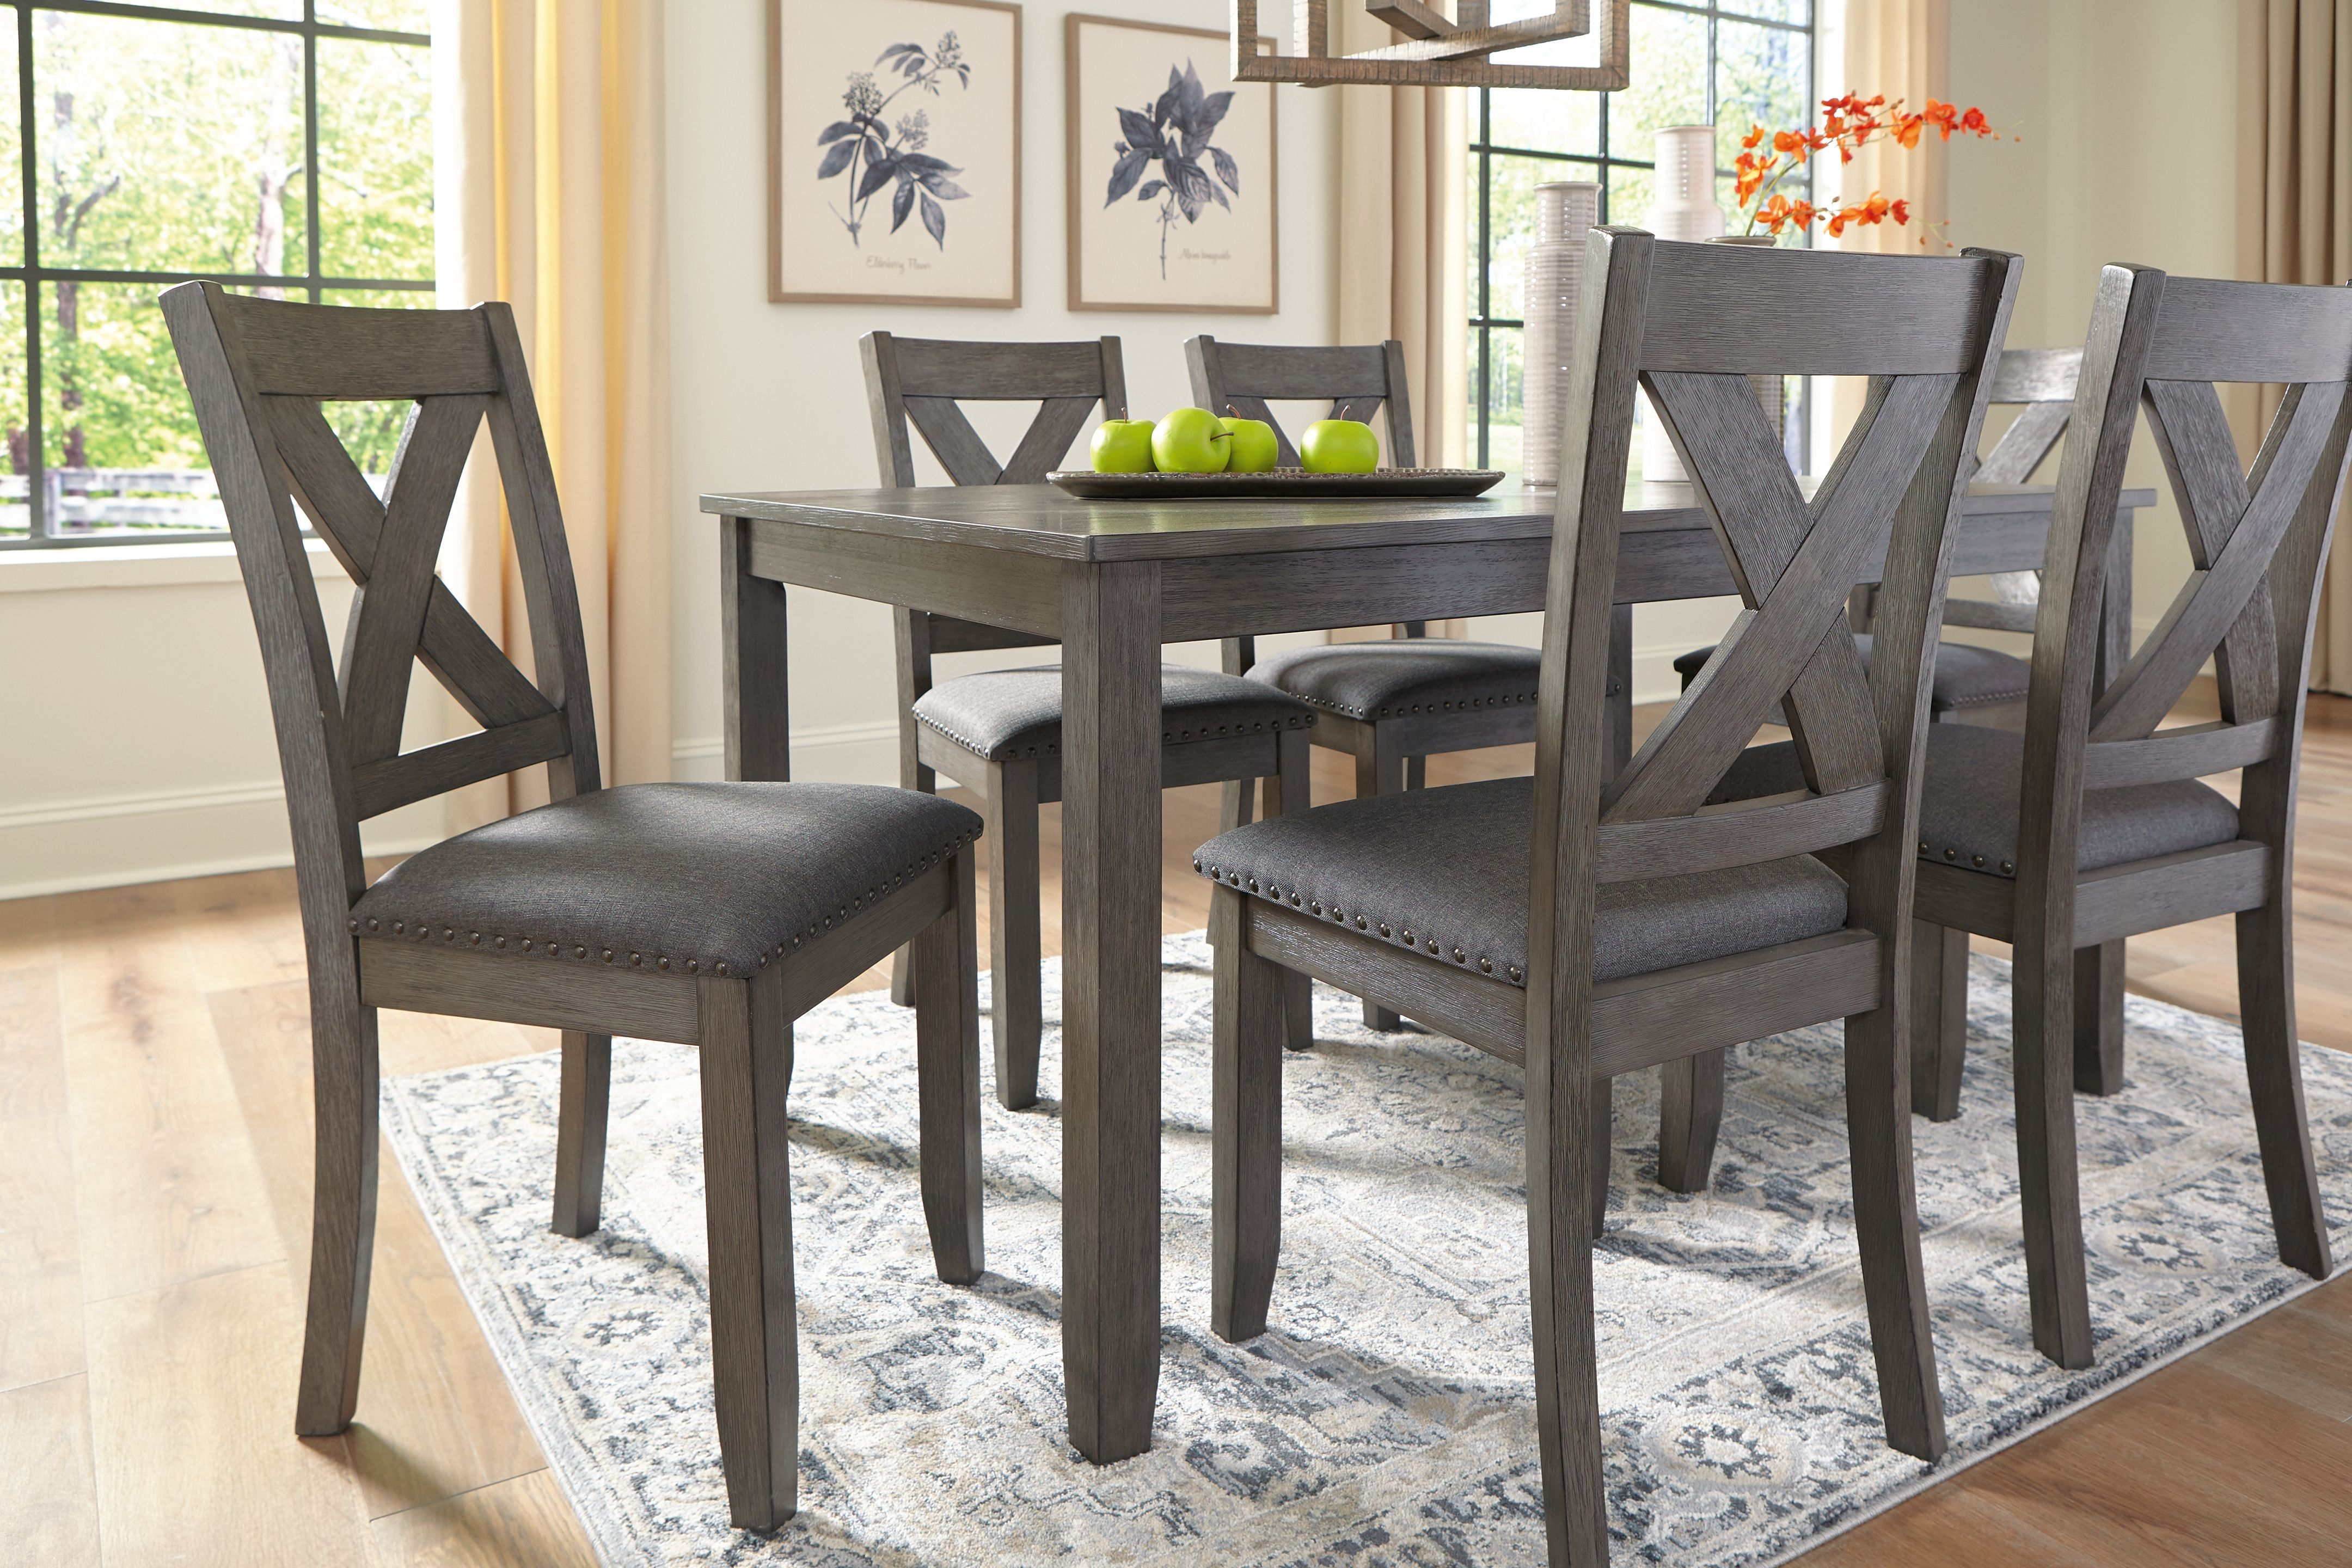 Caitbrook Dining Table And Chairs Set Of 7 Ashley Furniture Homestore In 2021 Table And Chair Sets Dining Room Table Dining Table Chairs